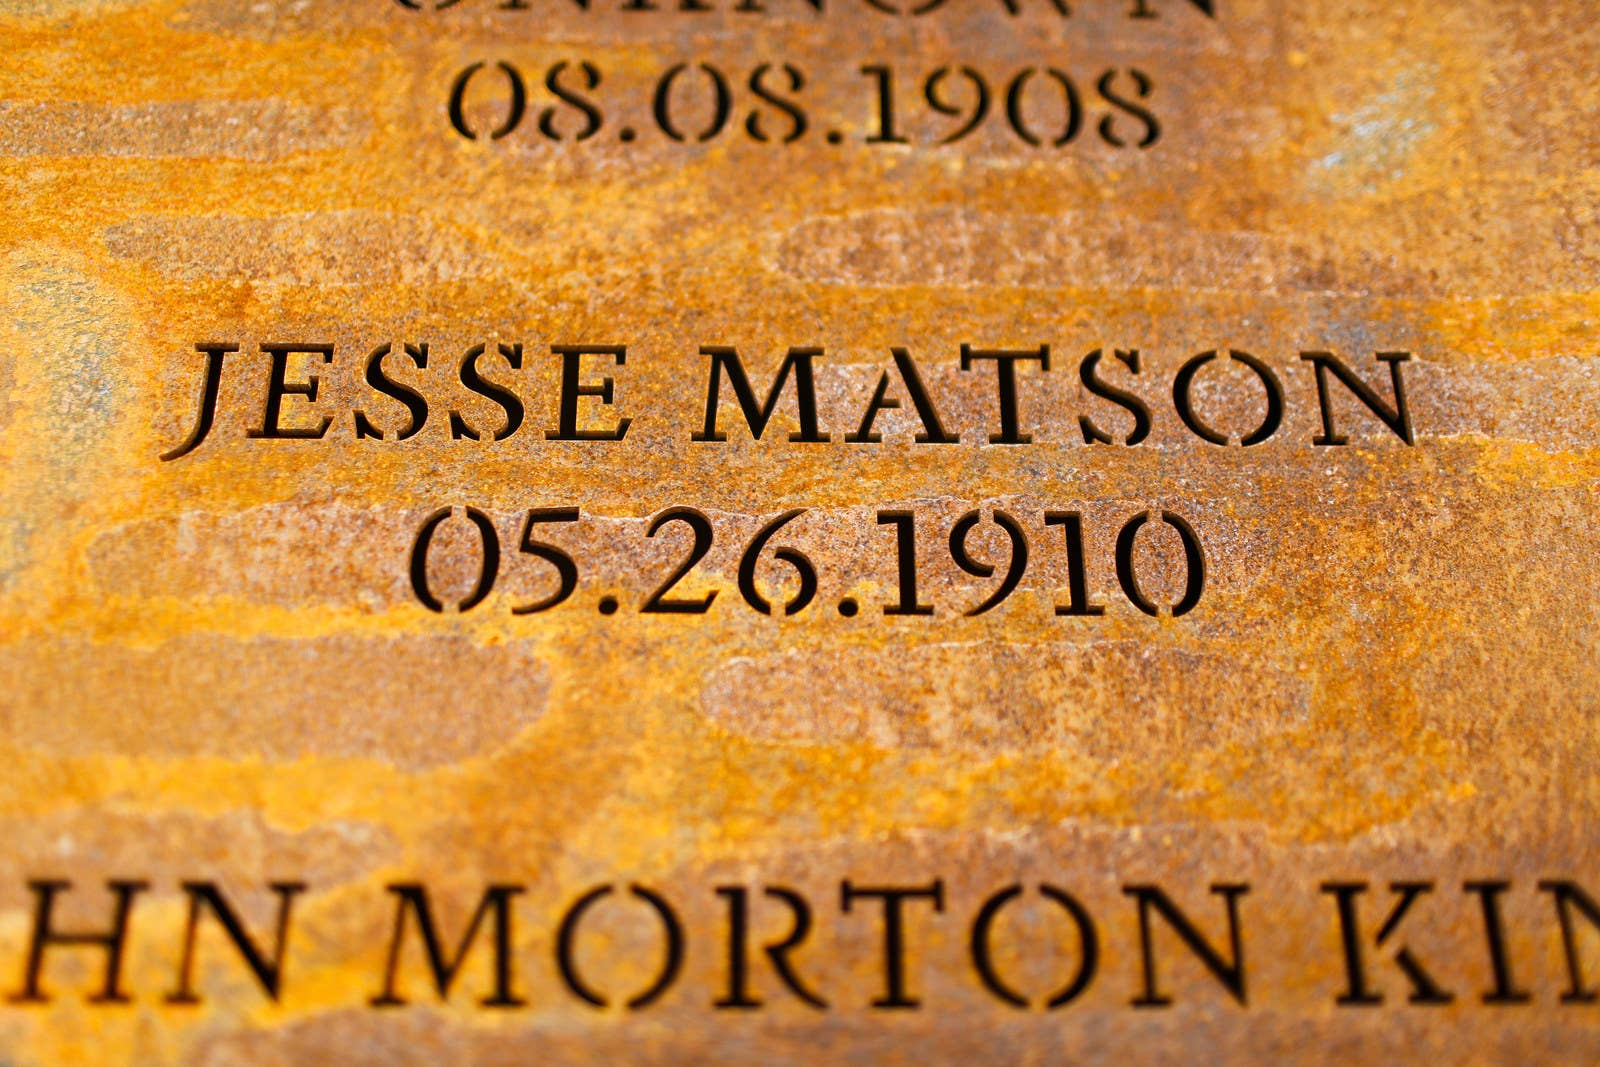 The name of a lynching victim is inscribed alongside the date of his death.